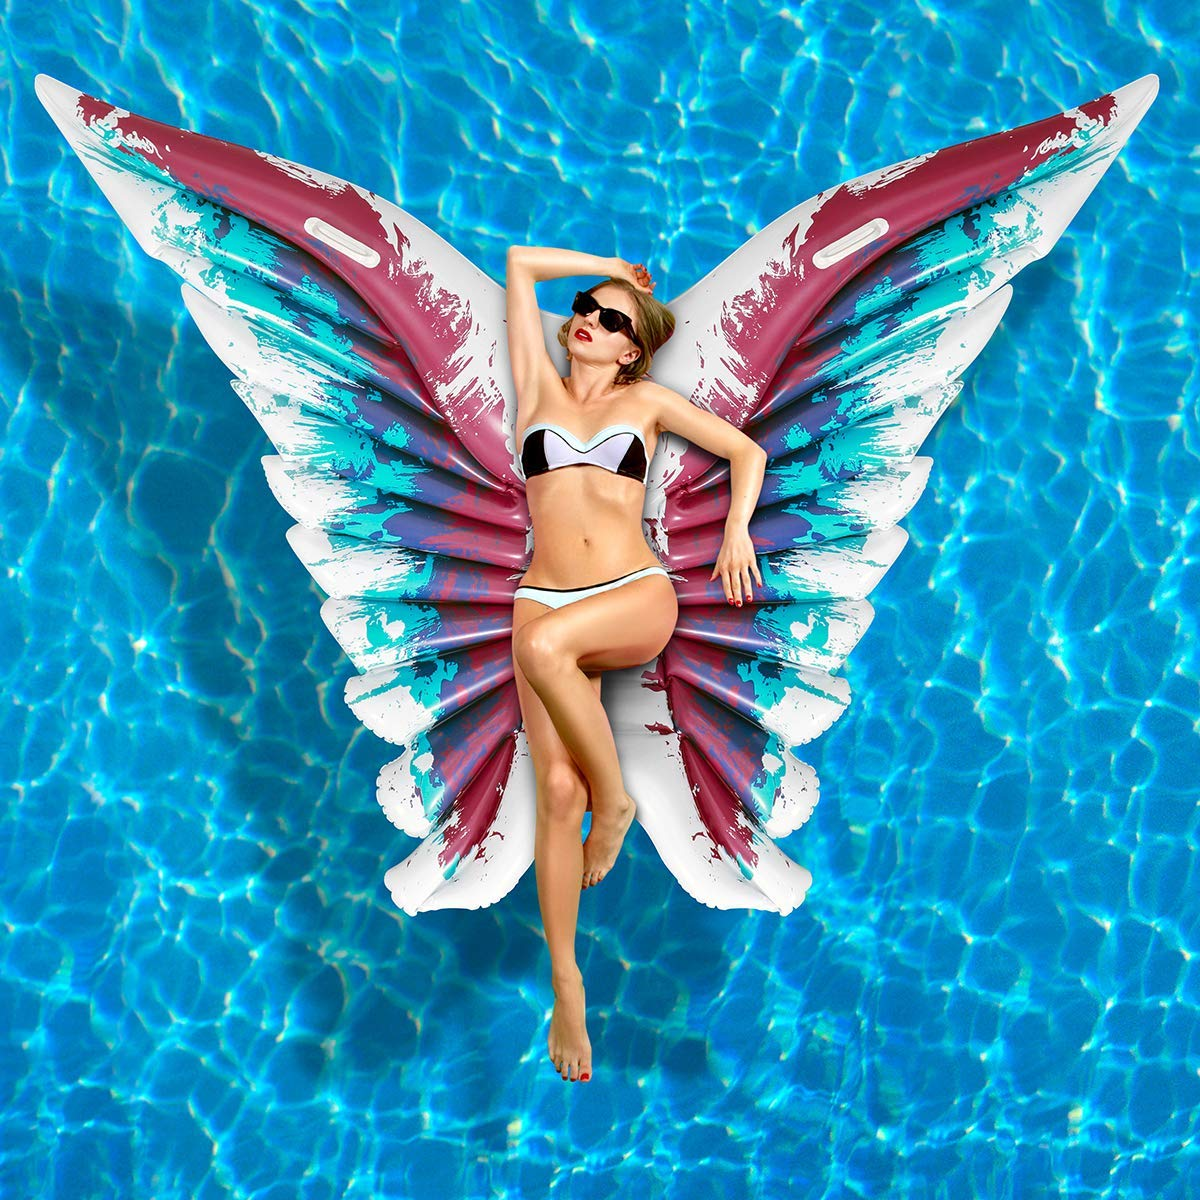 Provided Big Size Butterfly Top Inflatable Thicken Oversized Girls Boys Paddling Pool Family Childrens Pool Summer Water Play Pool Mother & Kids